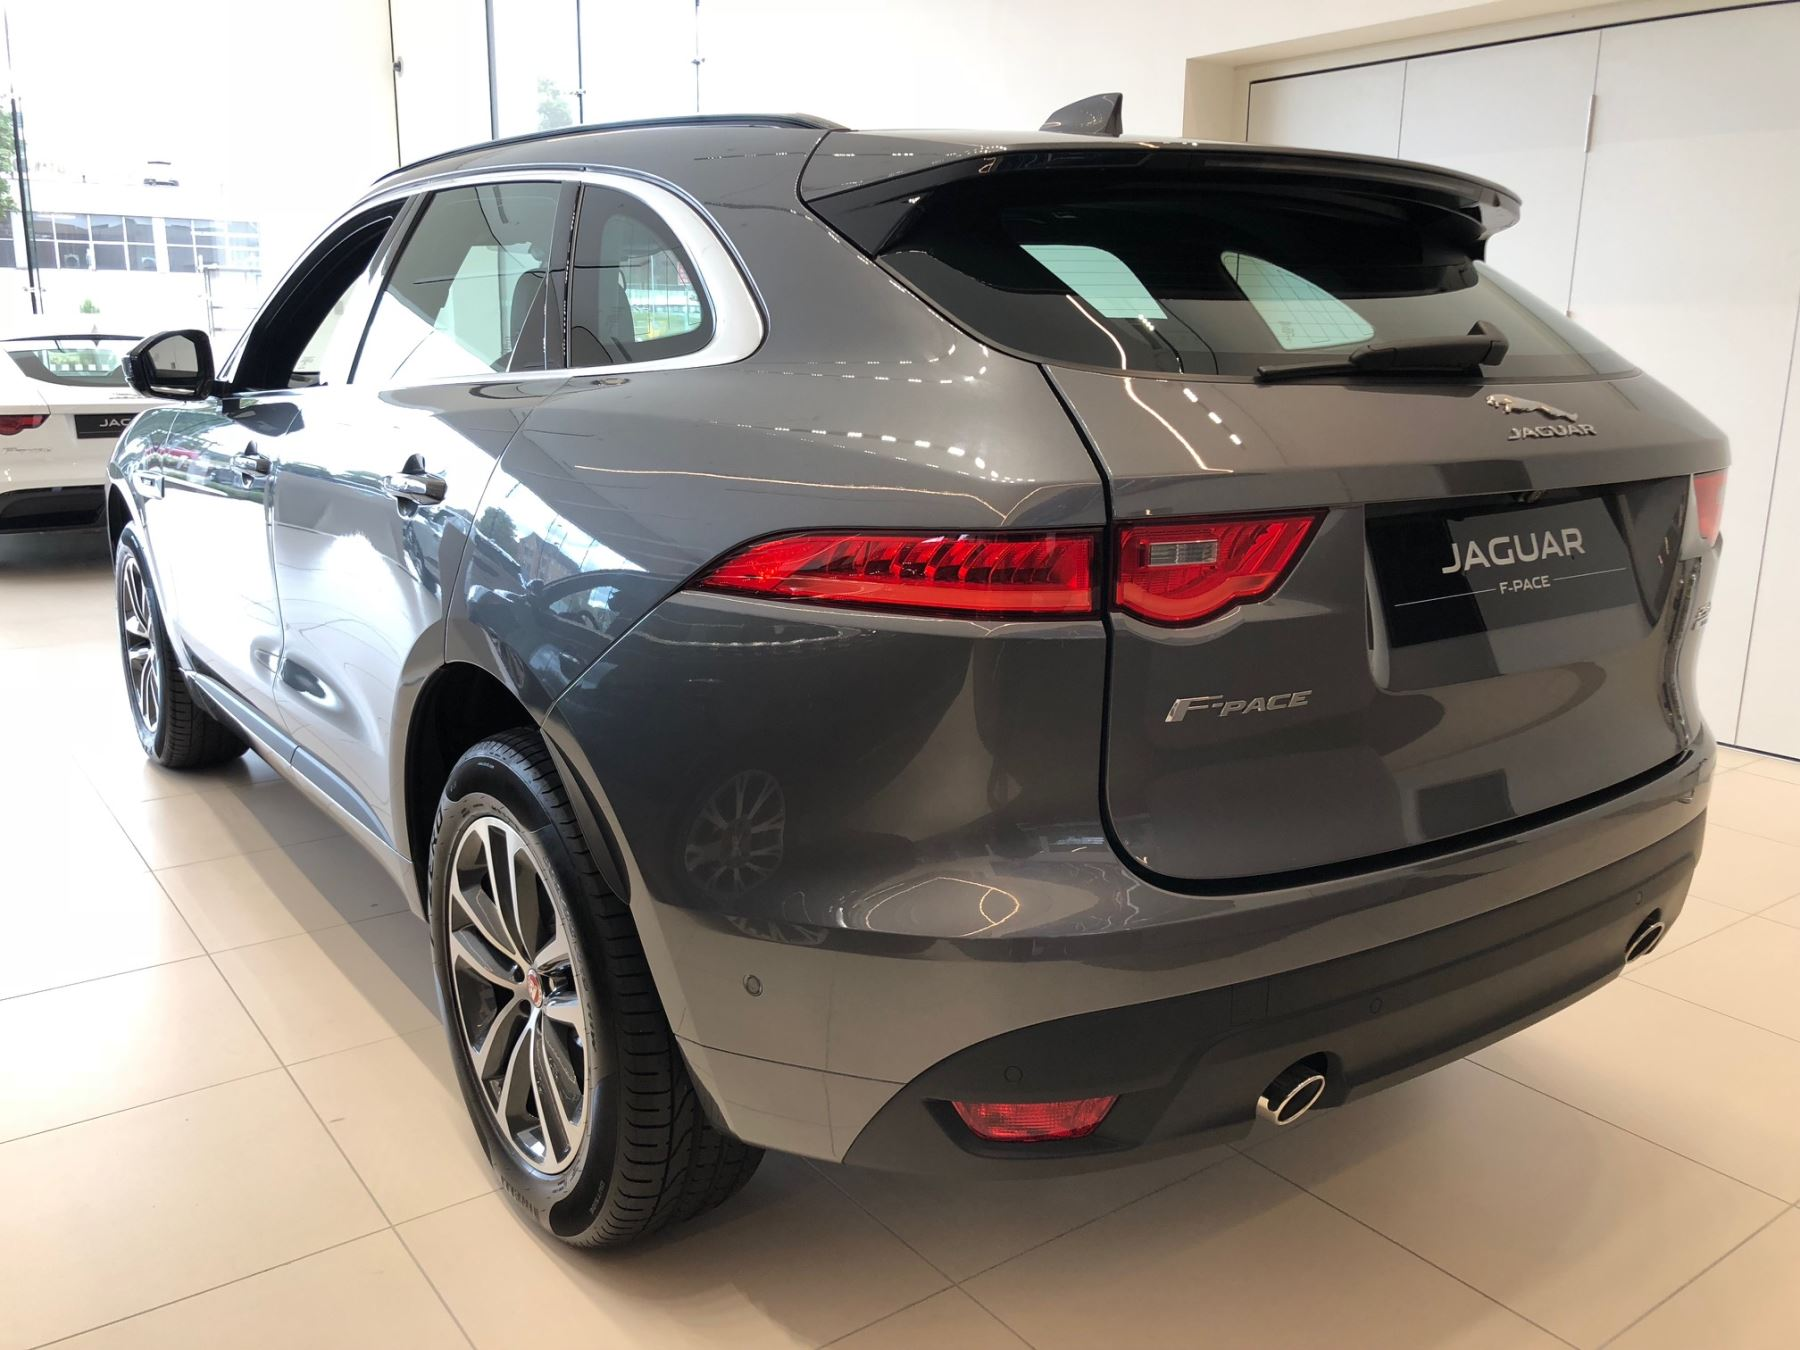 Jaguar F PACE 2 0d R Sport AWD Diesel Automatic 5 door Estate 16MY